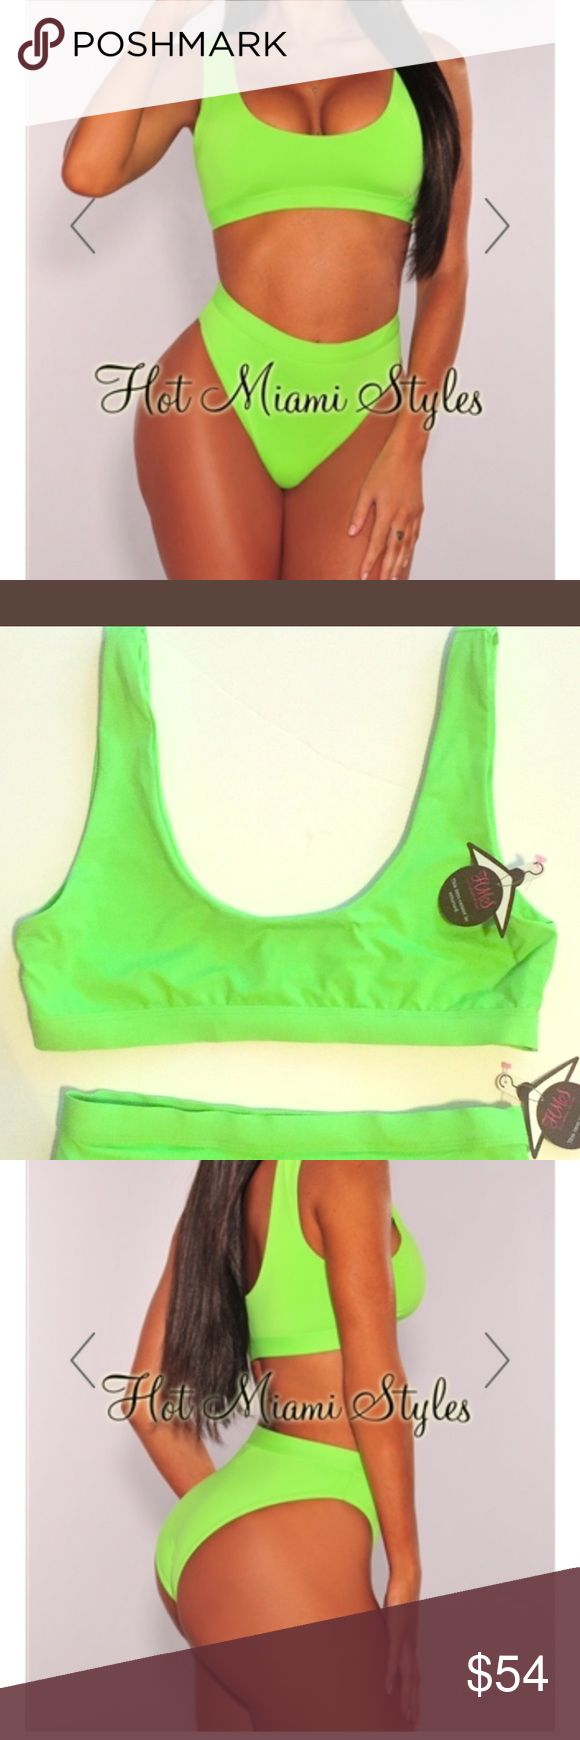 HOT MIAMI STYLES LIME GREEN HIGH WAIST BIKINI prefect for the summer. A size small bottom and top. The bottom is very cheeky and will show off all your curves Hot Miami styles Swim Bikinis